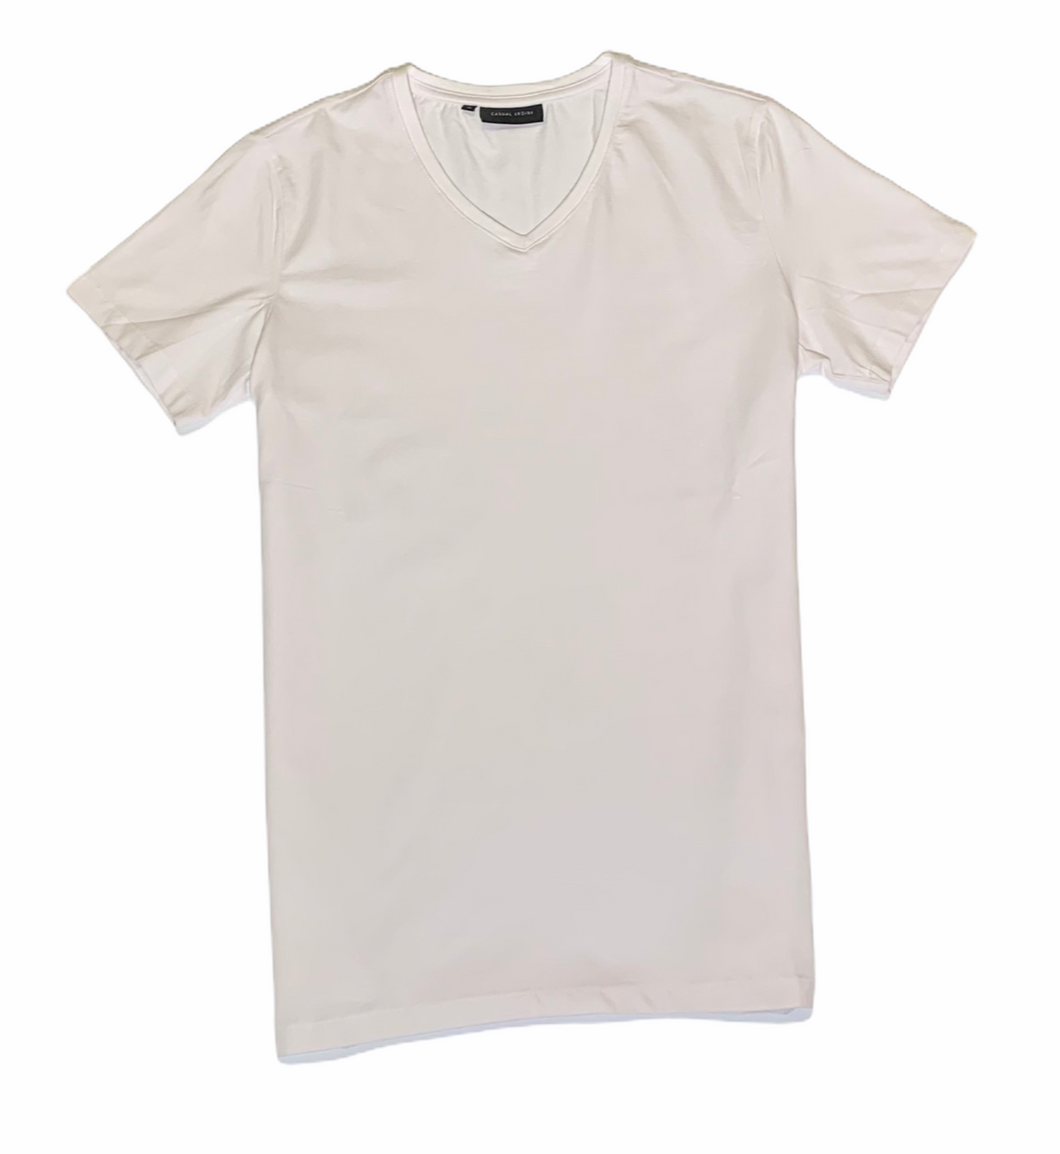 CASUAL FRIDAY T SHIRT V NECK - Caswell's Fine Menswear